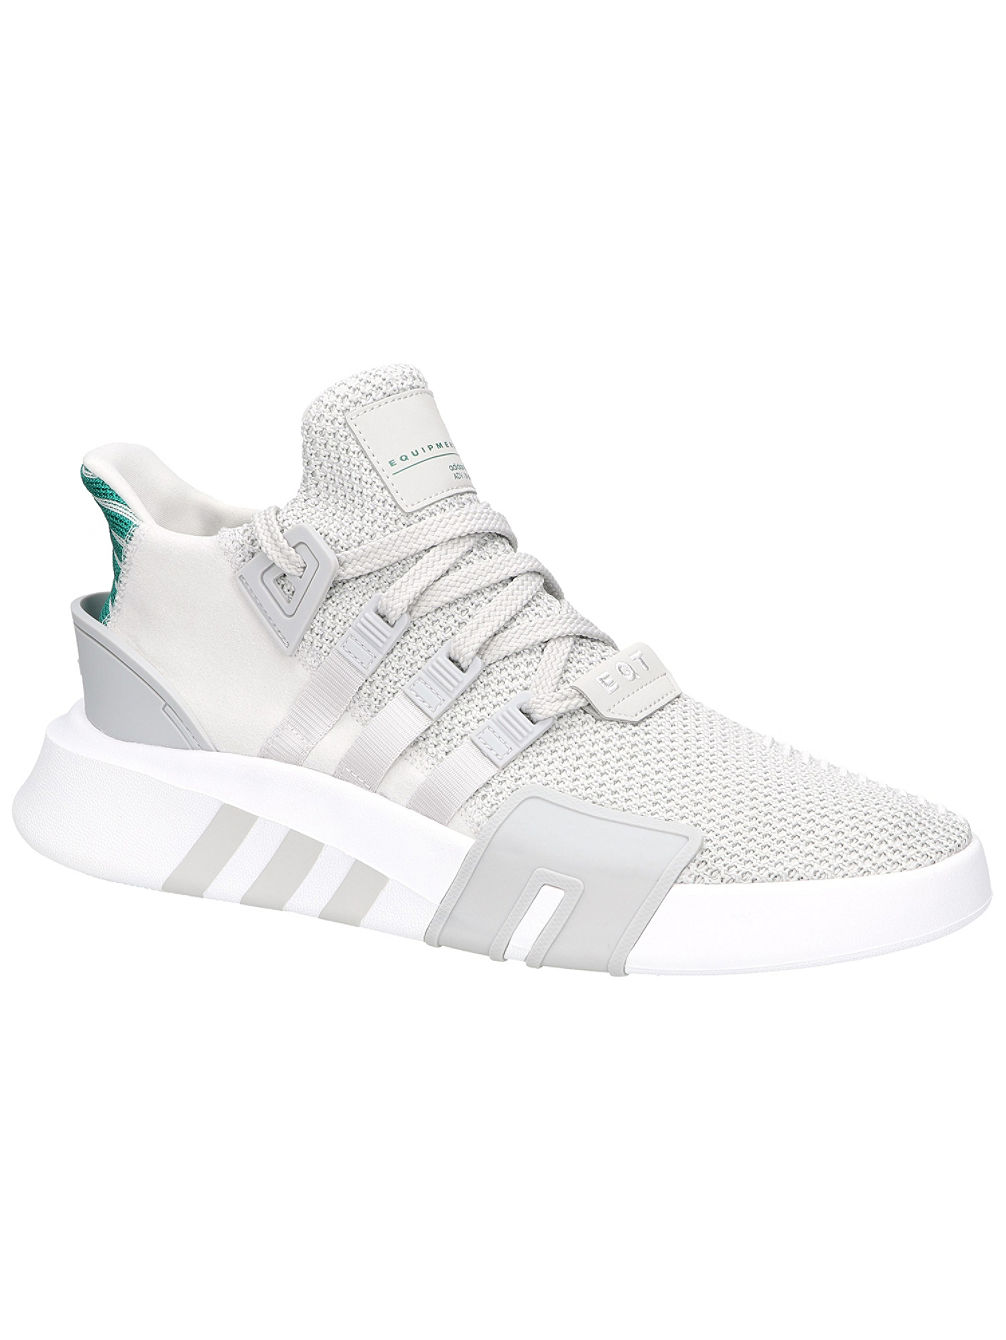 78363e38a76f Buy adidas Originals EQT Bask ADV Sneakers online at Blue Tomato